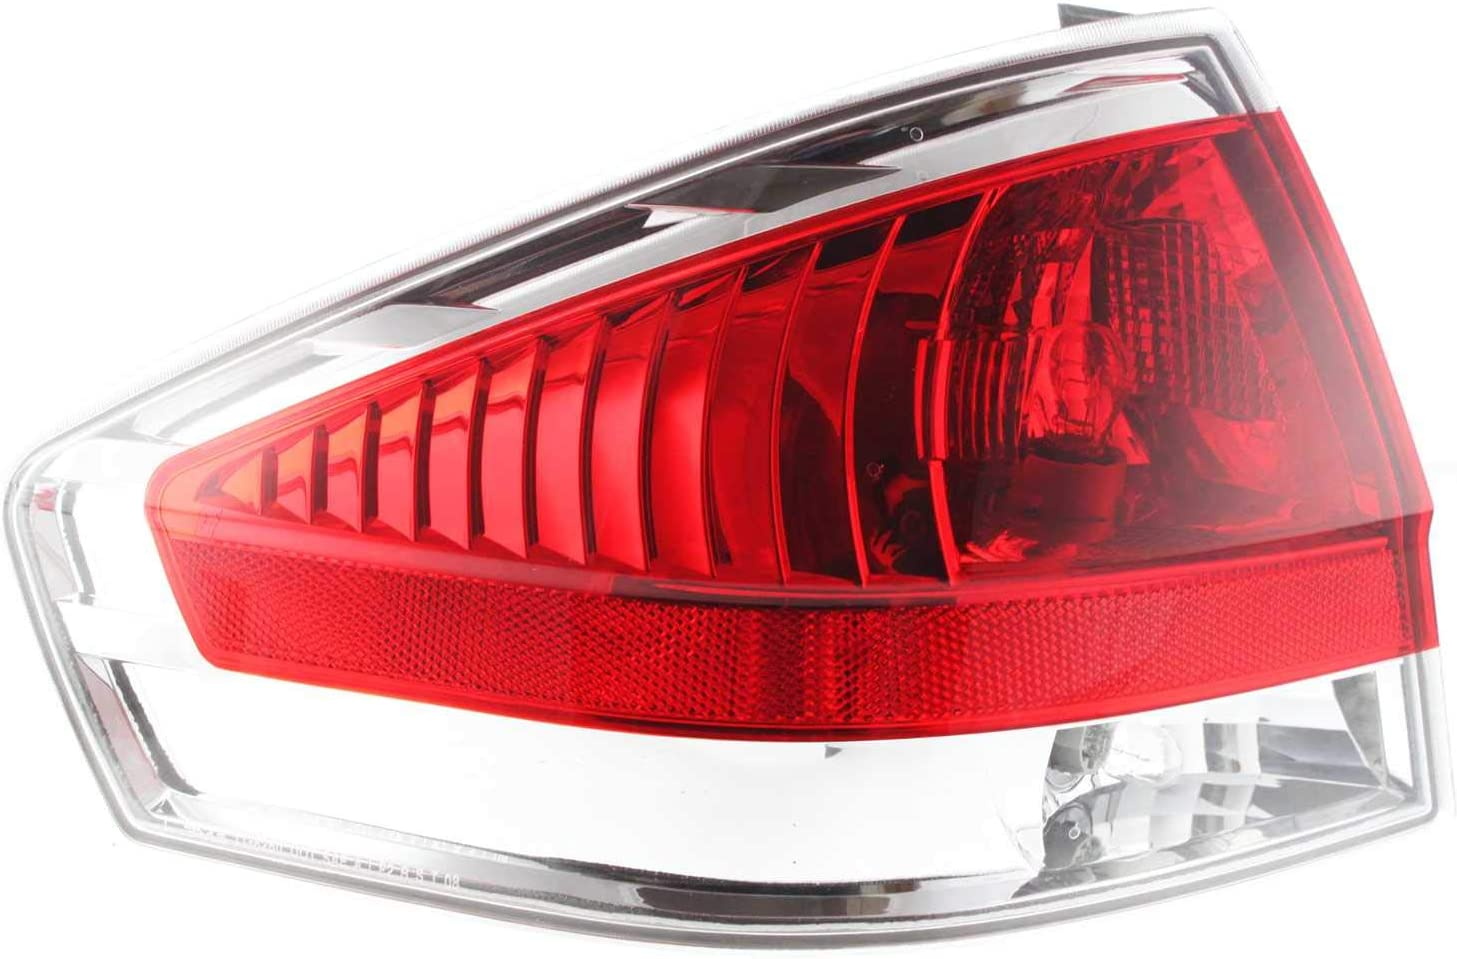 Max 41% OFF Evan-Fischer gift Tail Light Assembly Compatible with Ford Focus 2008